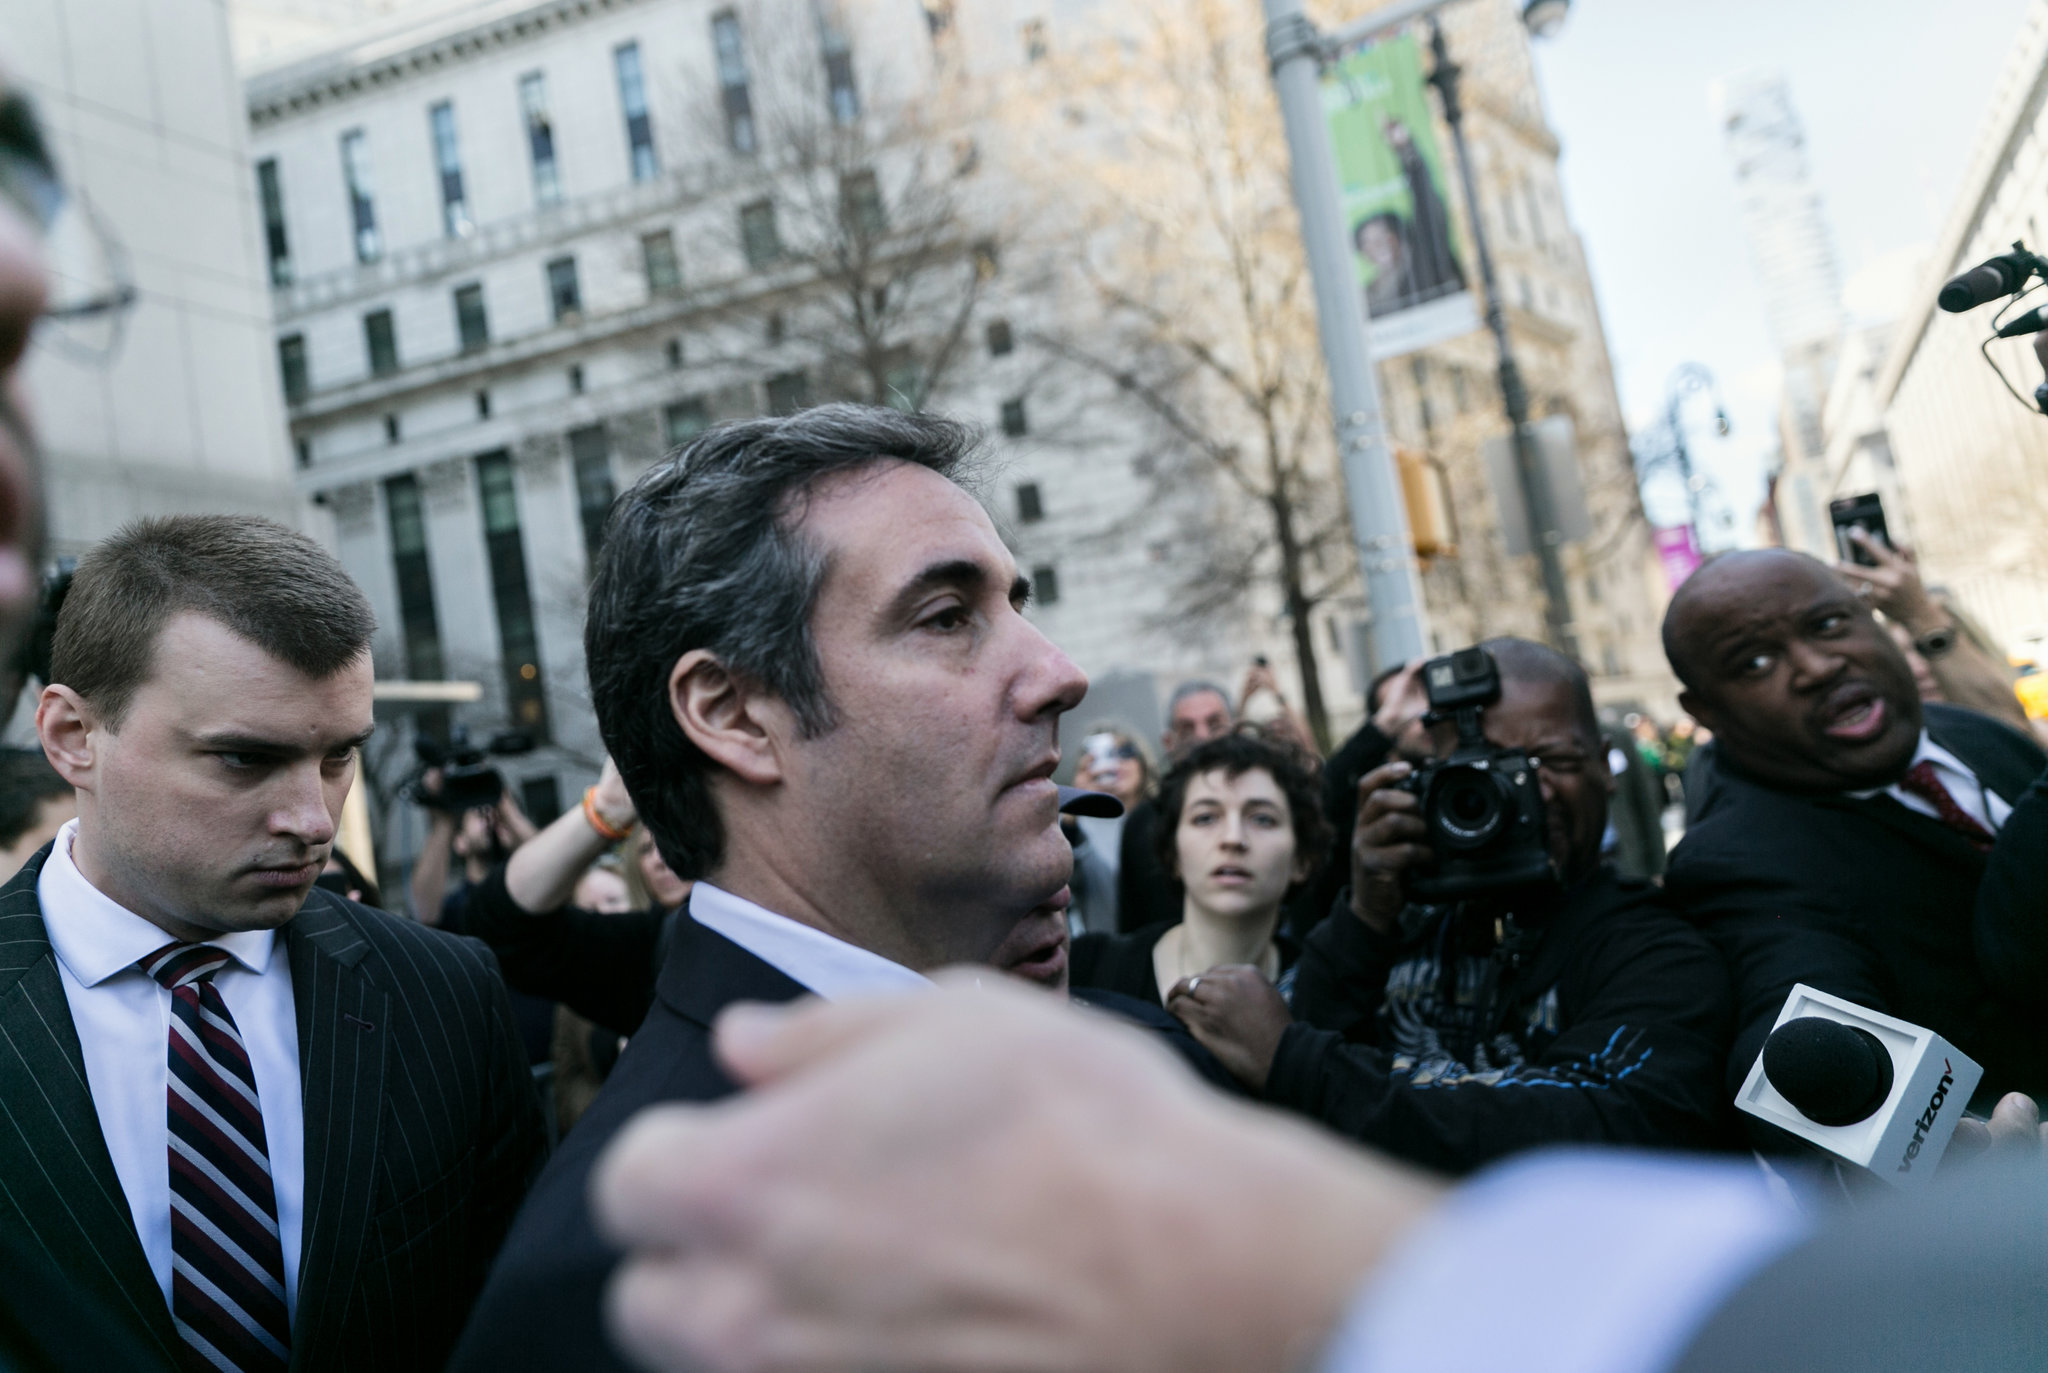 BREAKING: SOURCE REVEALS PROOF OF COHEN BRIBERY DURING TRUMP TOWER MEETING